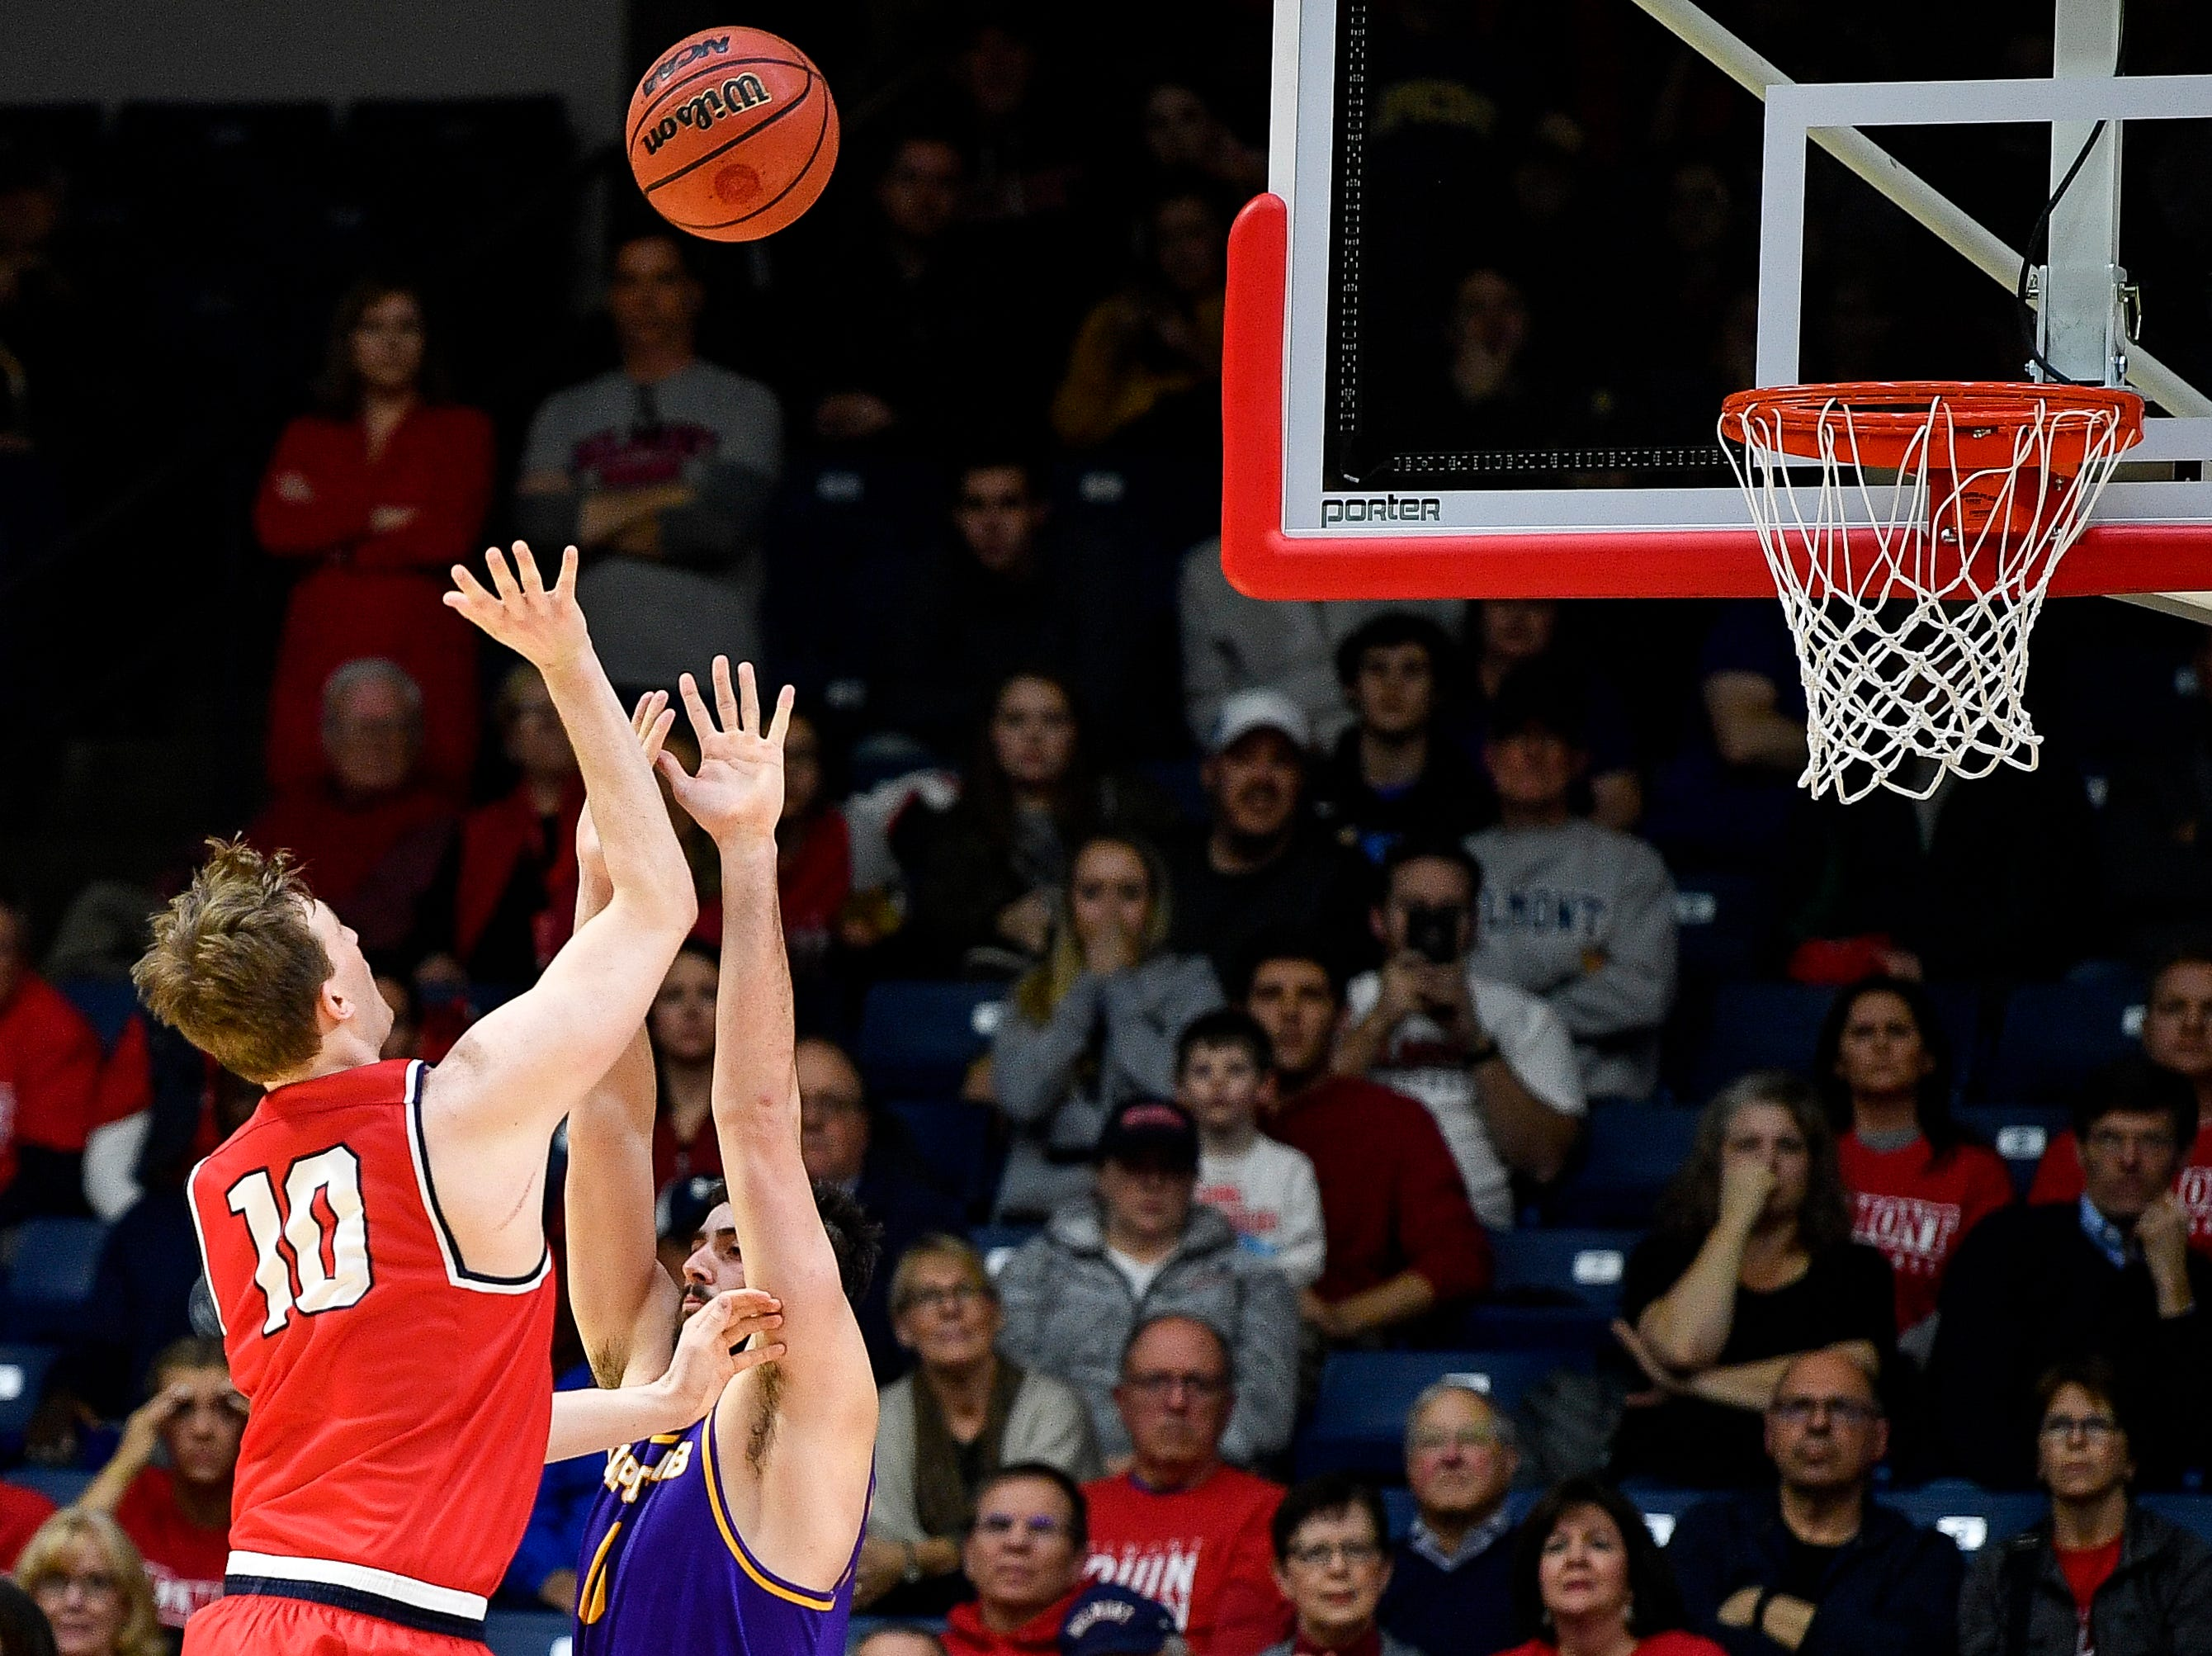 Belmont forward Caleb Hollander (10) scores the game-winning basket past Lipscomb forward Rob Marberry (0) during the second half at the Curb Event Center in Nashville, Tenn., Tuesday, Dec. 4, 2018.